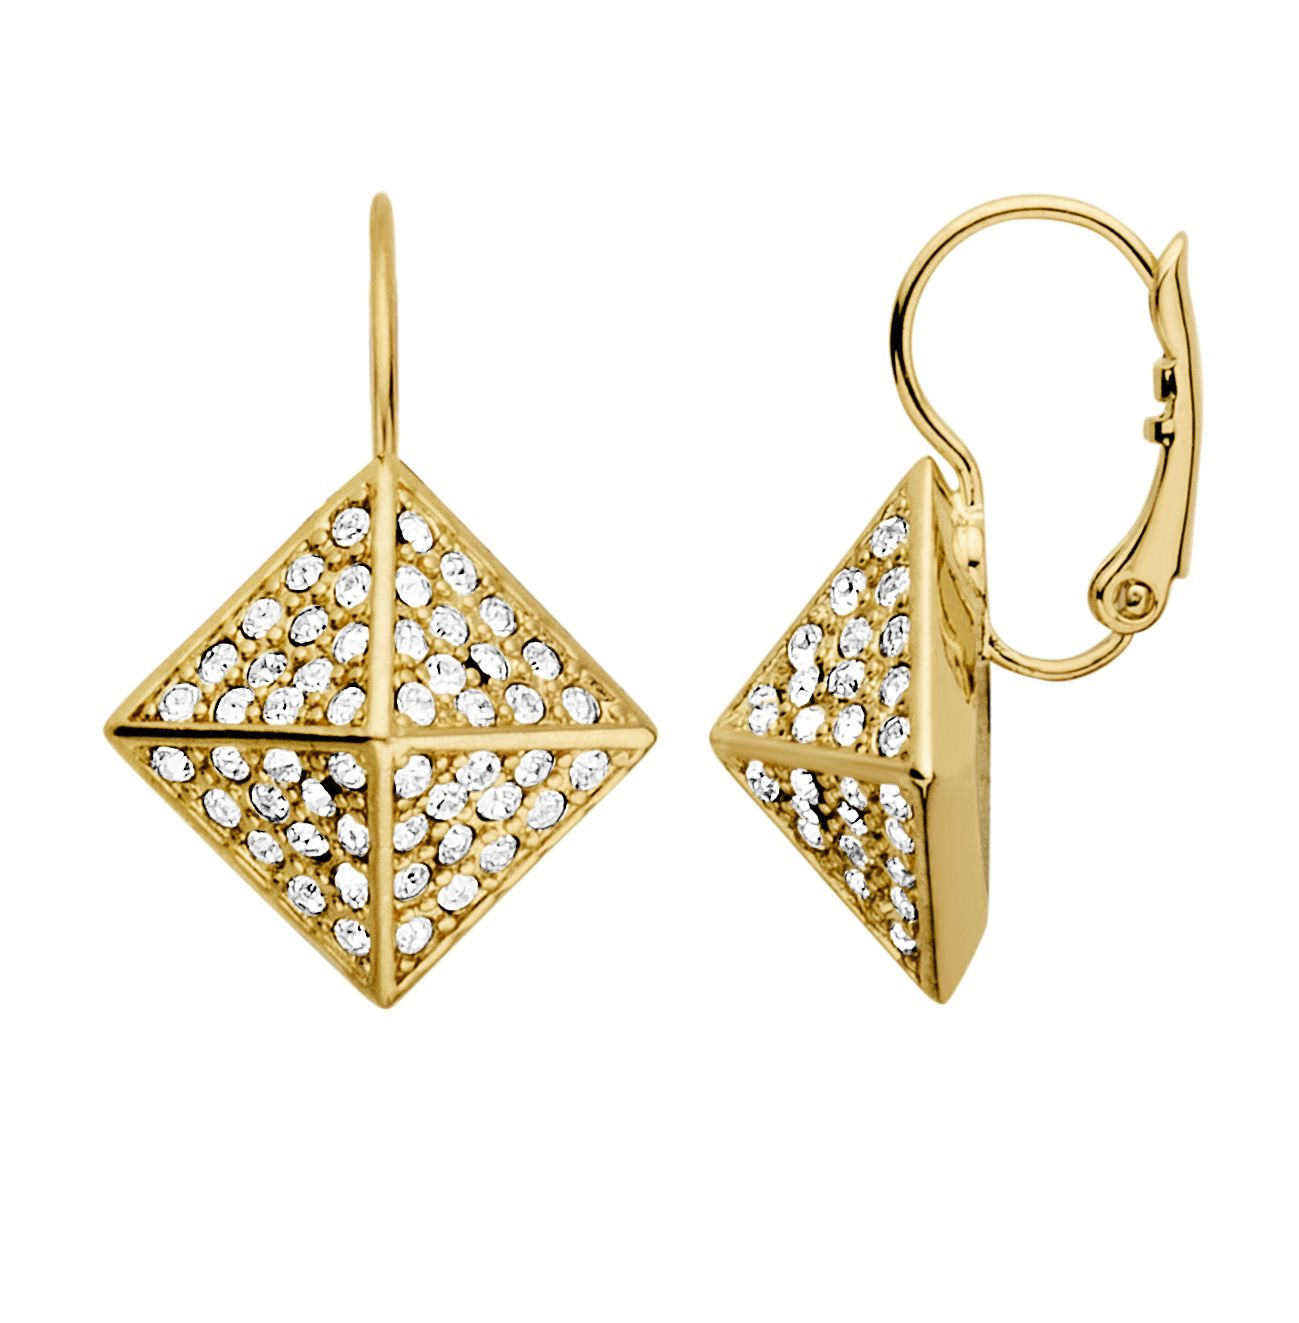 Kalfani shiny gold earrings